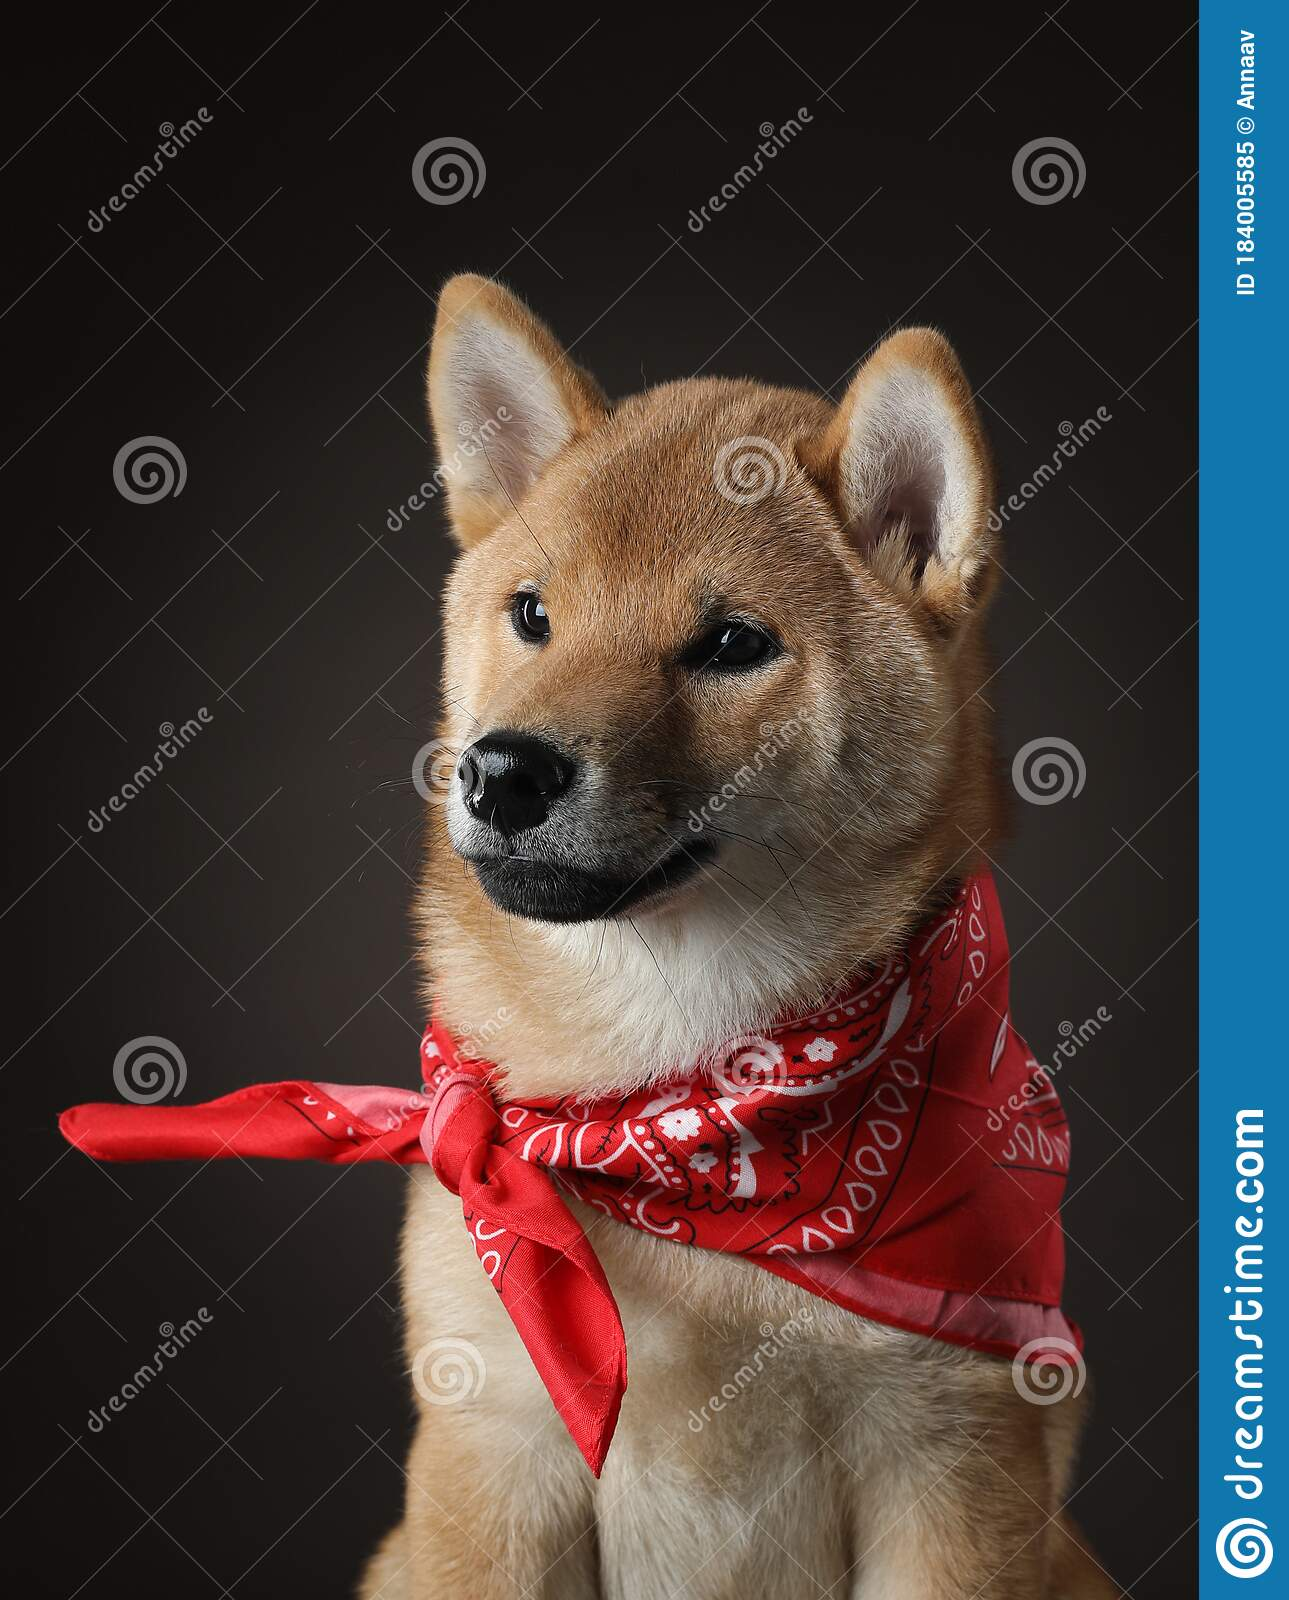 Shiba Inu Puppy Dog On A Black Background Pet In The Studio Stock Image Image Of Doggy Brown 184005585